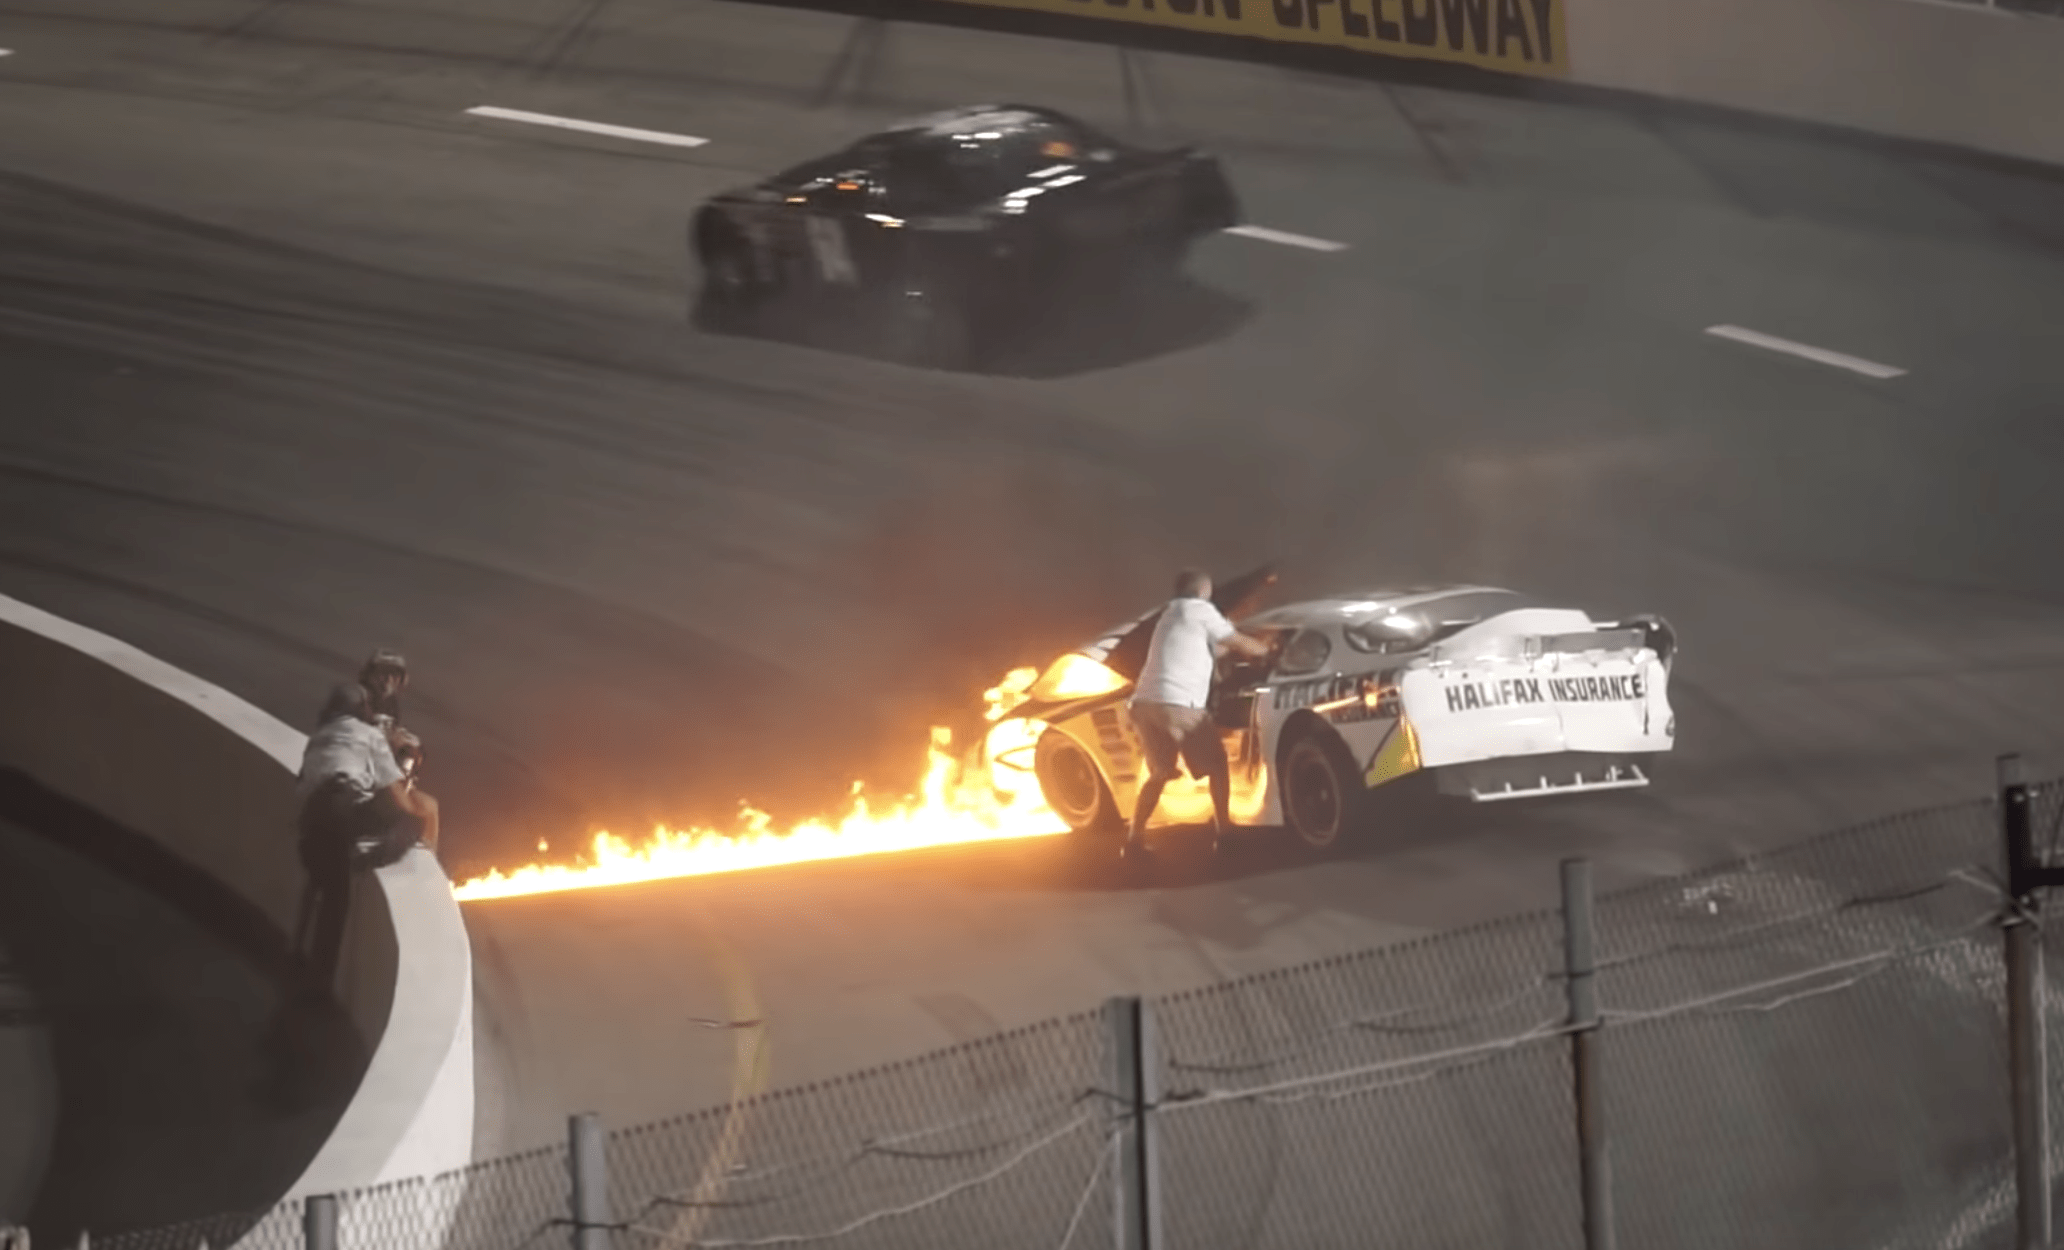 Sparks began to fly from the car before it was engulfed in flames and Jones was stuck in the vehicle for around 20 seconds